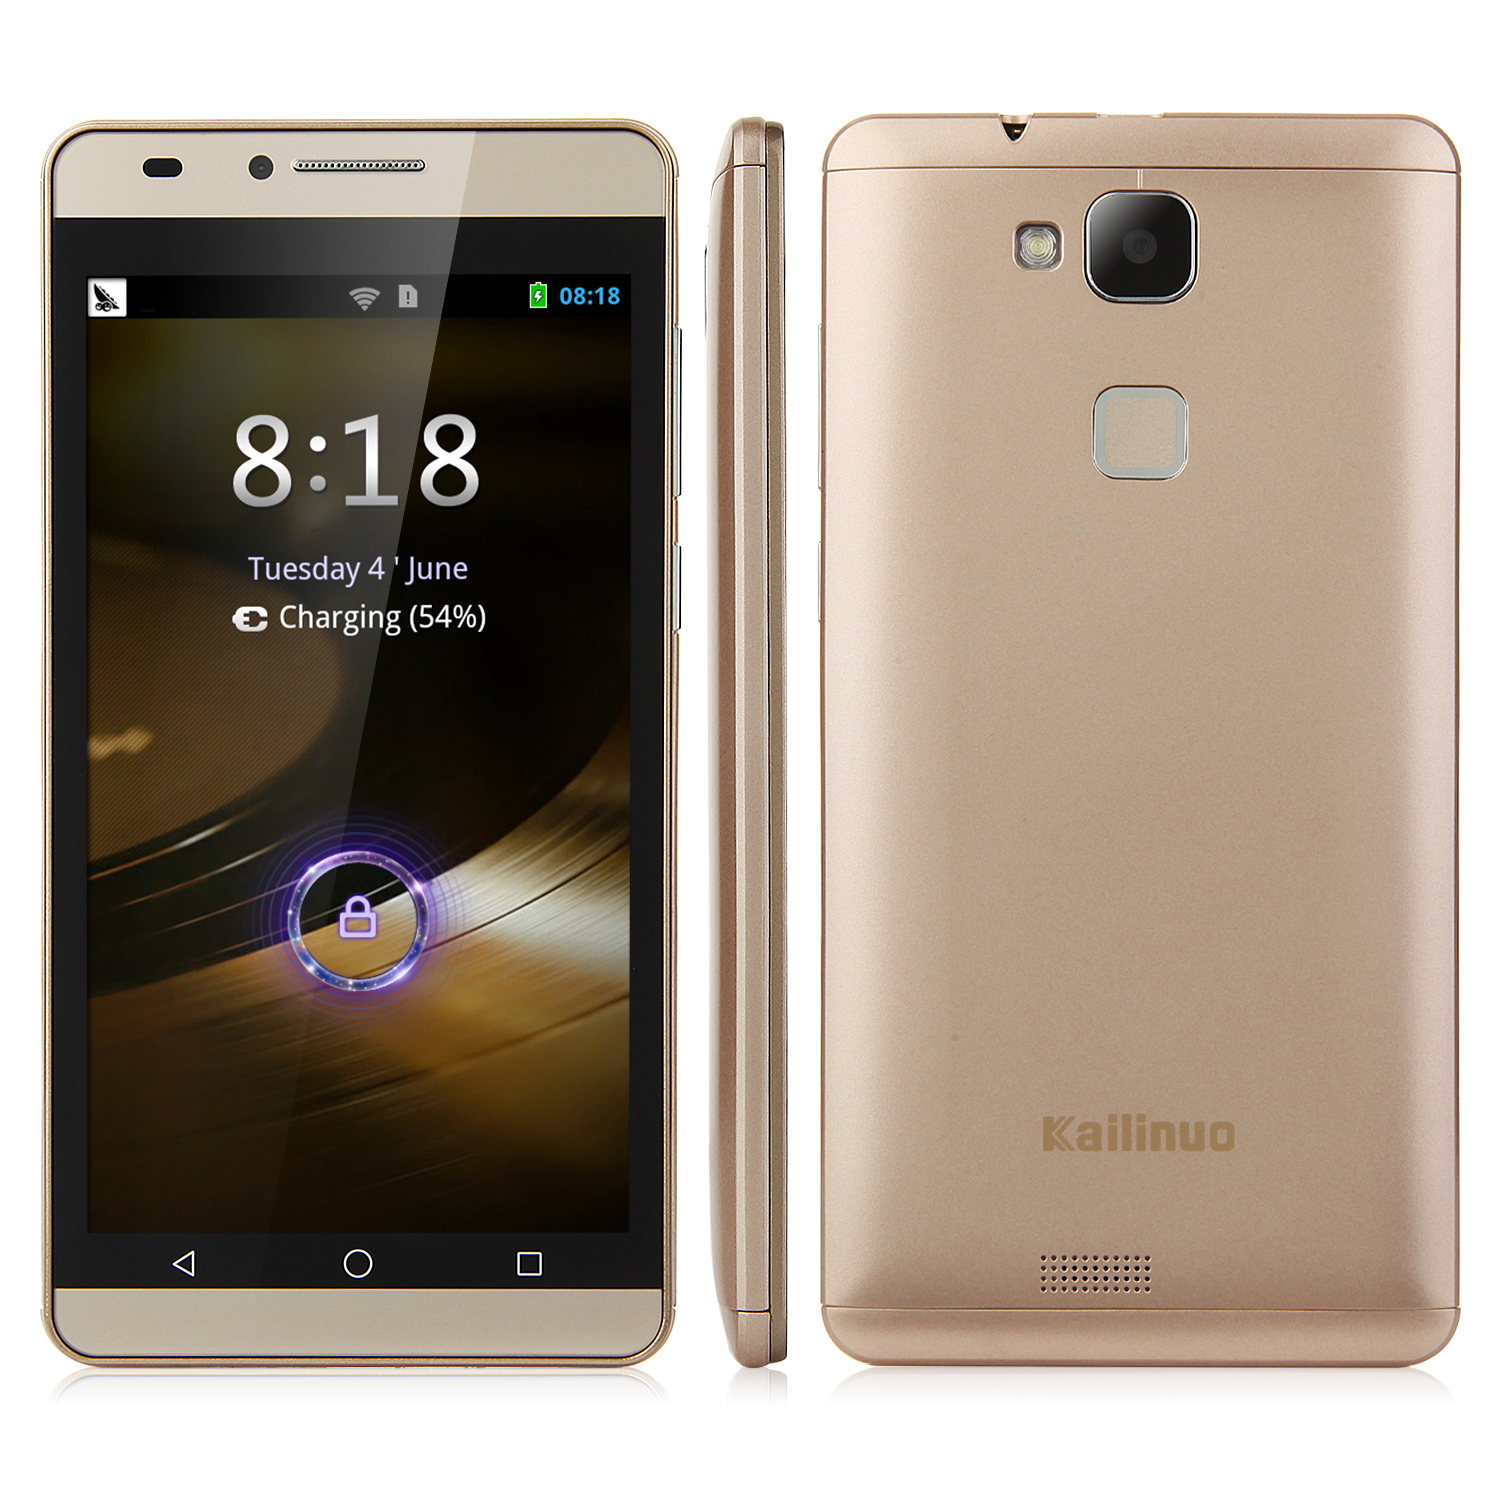 Kailinuo K27 Smartphone 5.0 Inch MTK6572M Dual Core Android 4.2 Gold